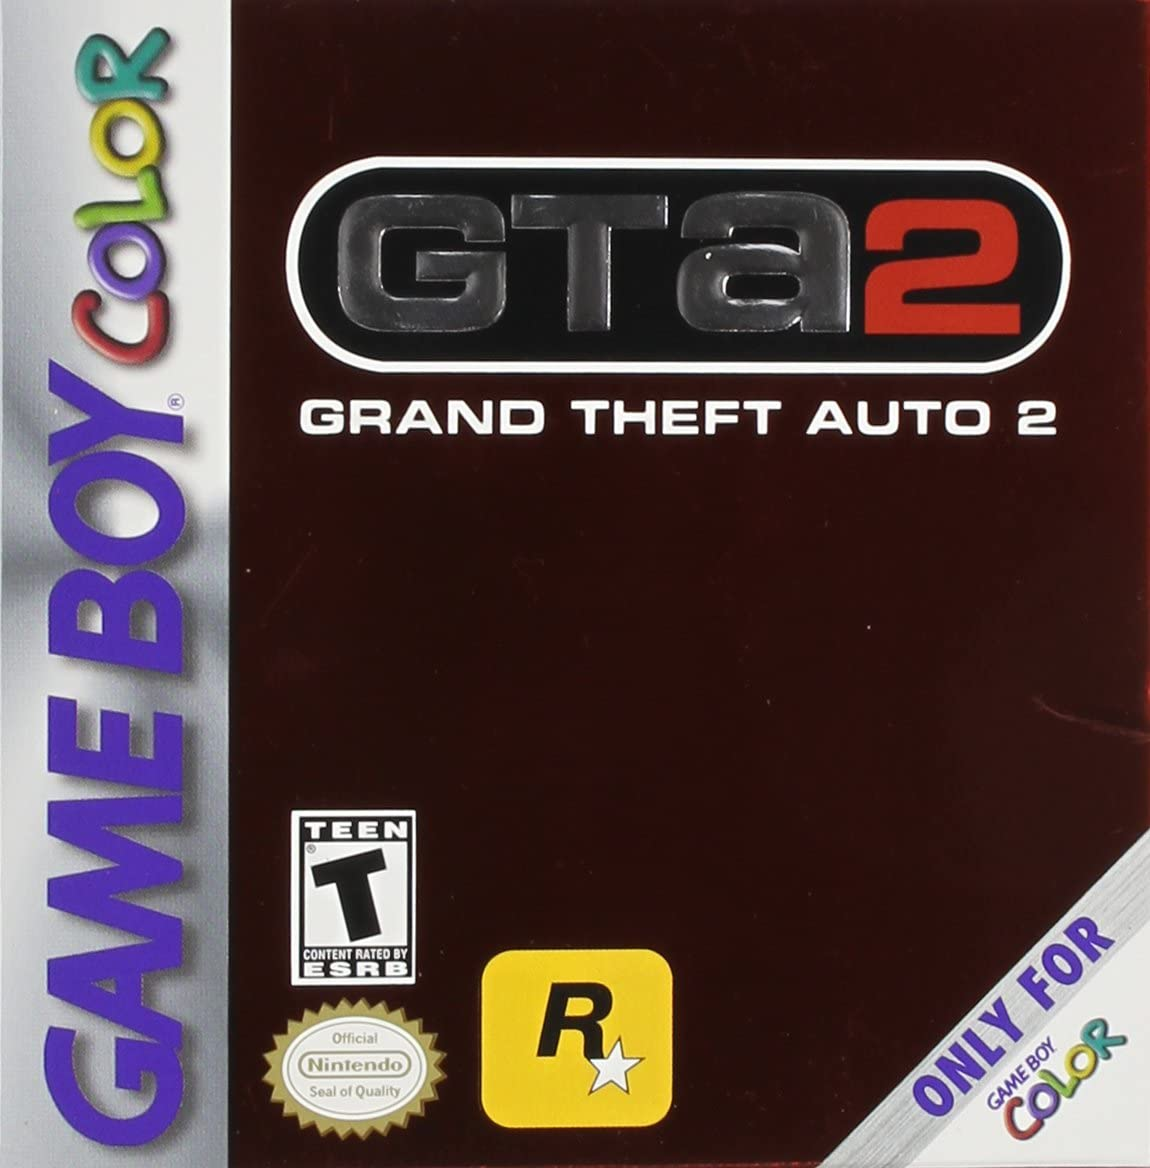 Game boy color kaufen - Amazon Com Grand Theft Auto 2 Game Boy Color Nintendo Game Boy Color Video Games